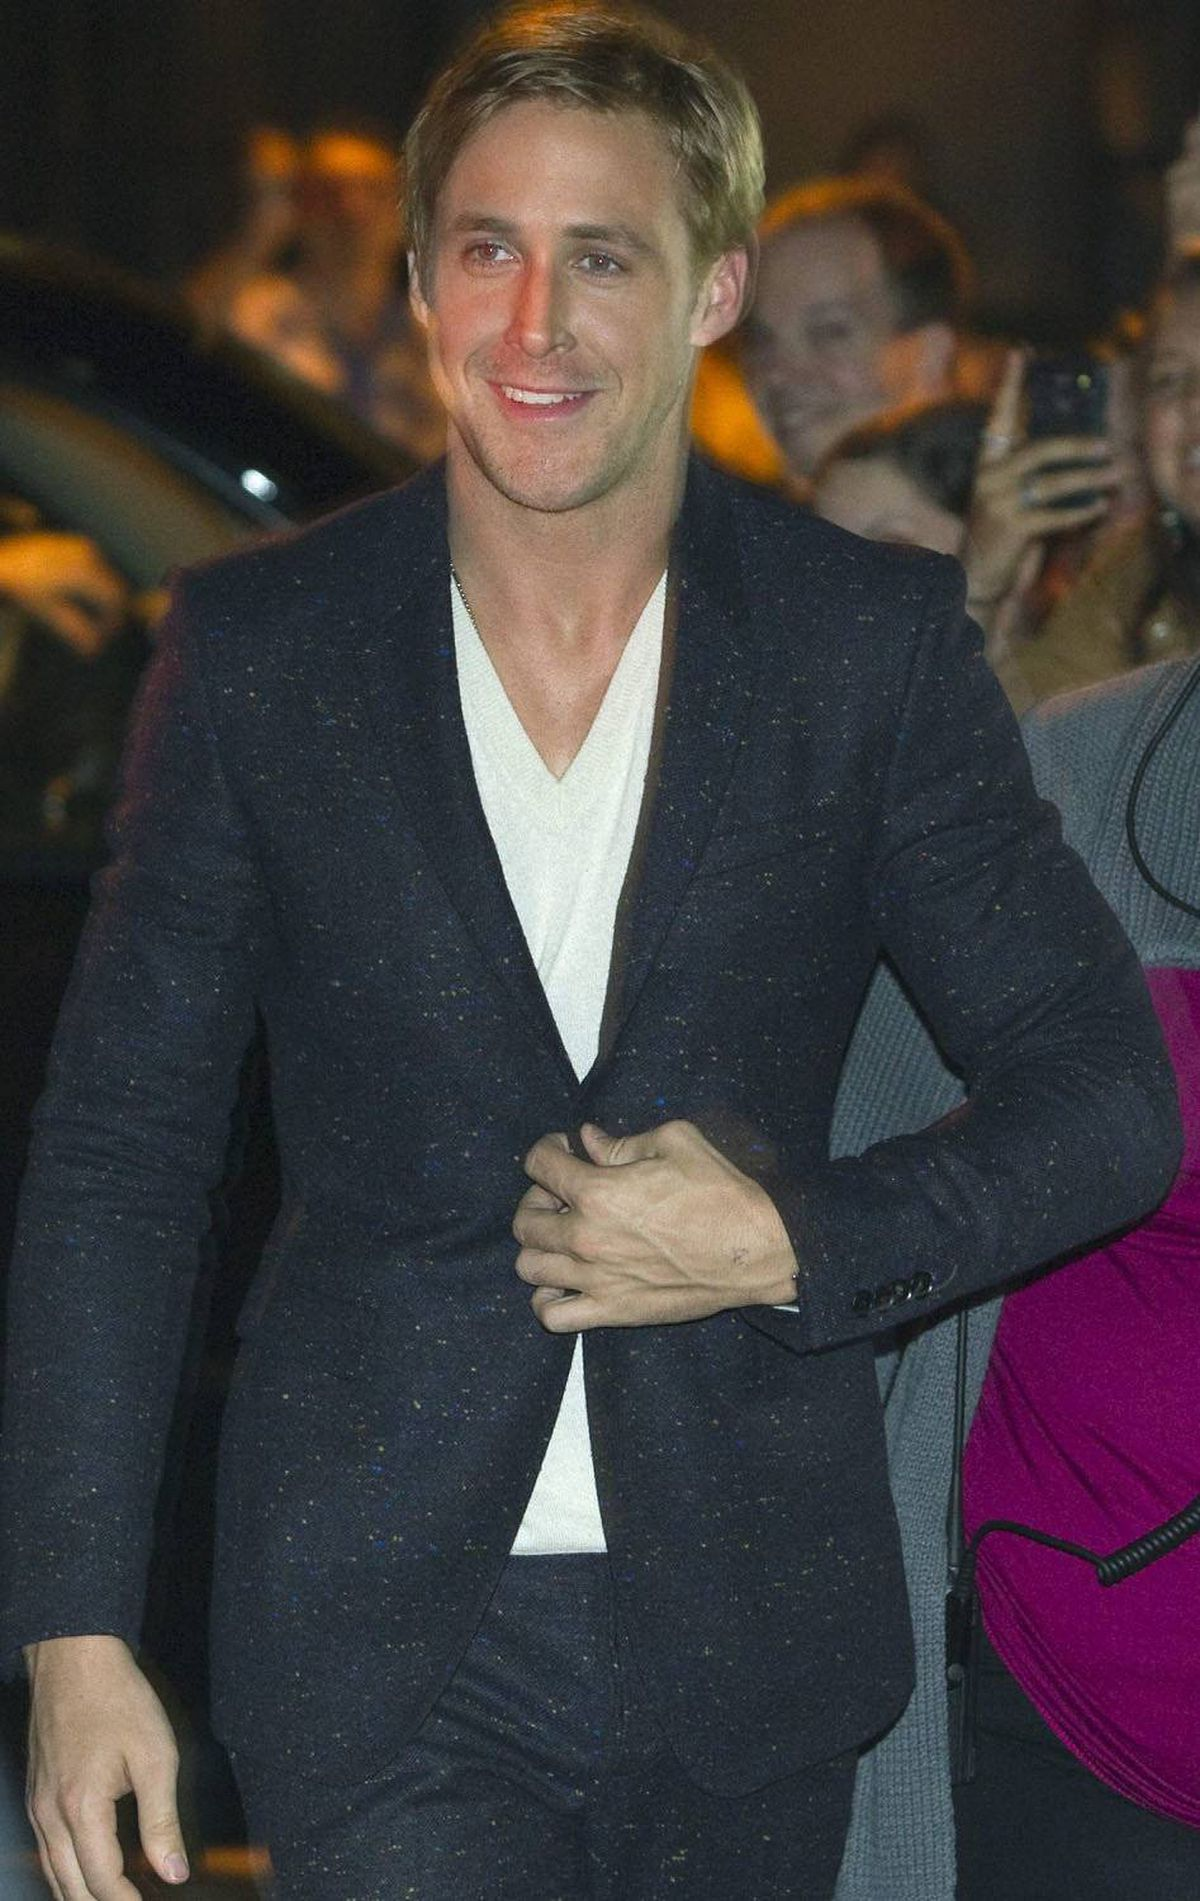 Actor Alexander Ryan Gosling arrives at outside the gala premier of the movie Drive at the Ryerson Theatre, at the 36th Toronto International Film Festival in Toronto September 10, 2011.